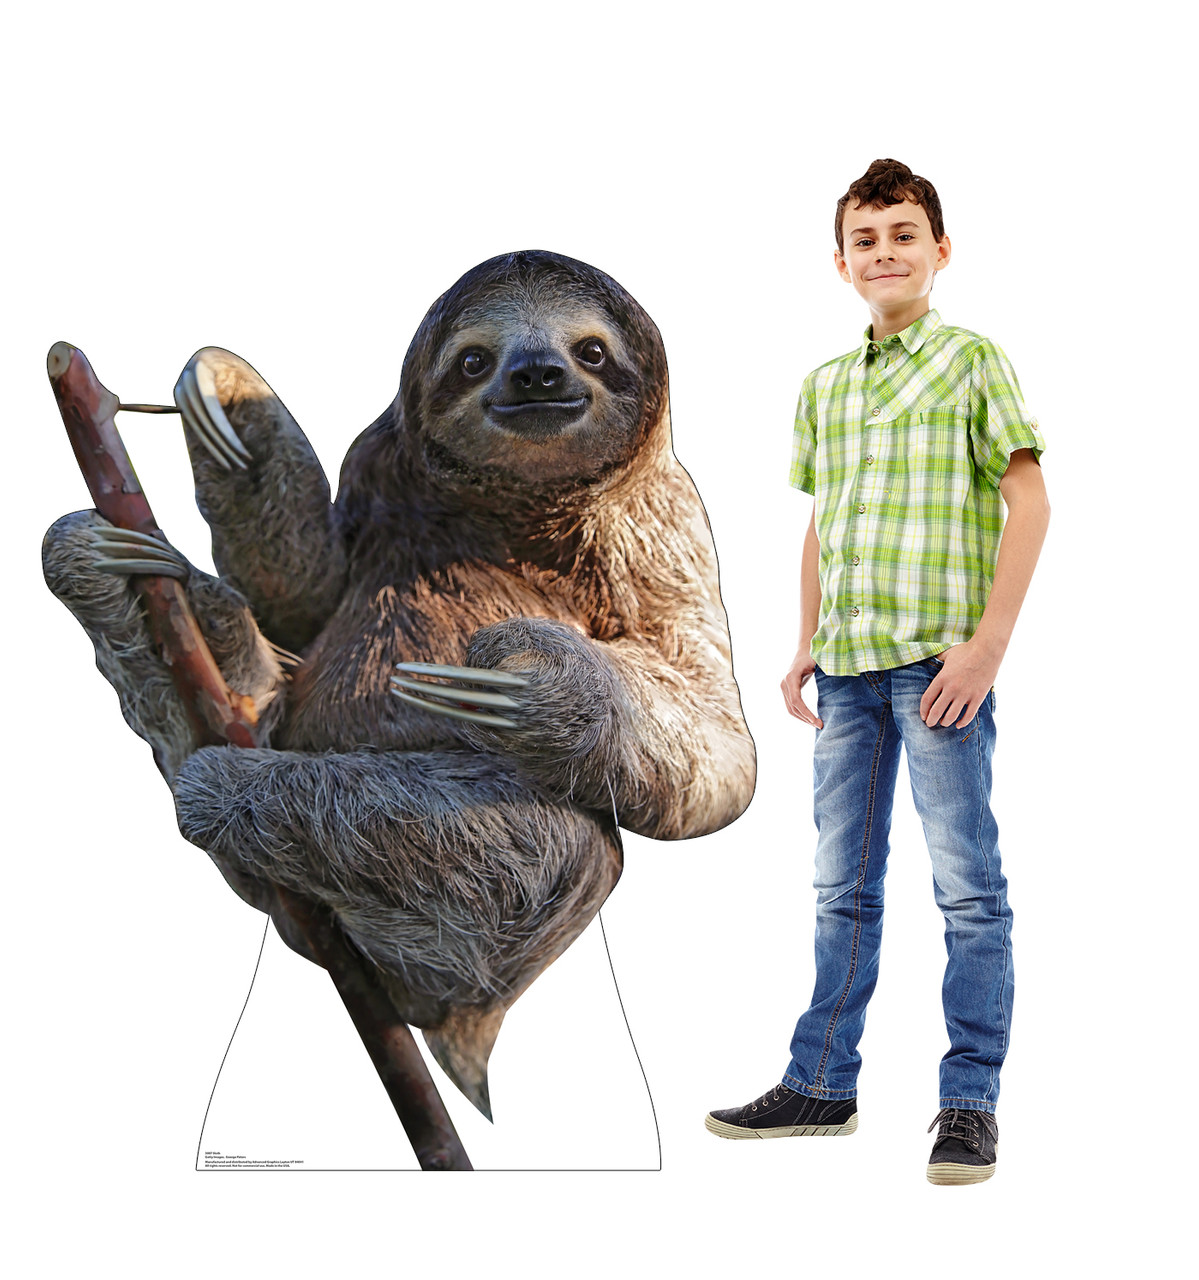 Life-size cardboard standee of a Sloth Lifesize